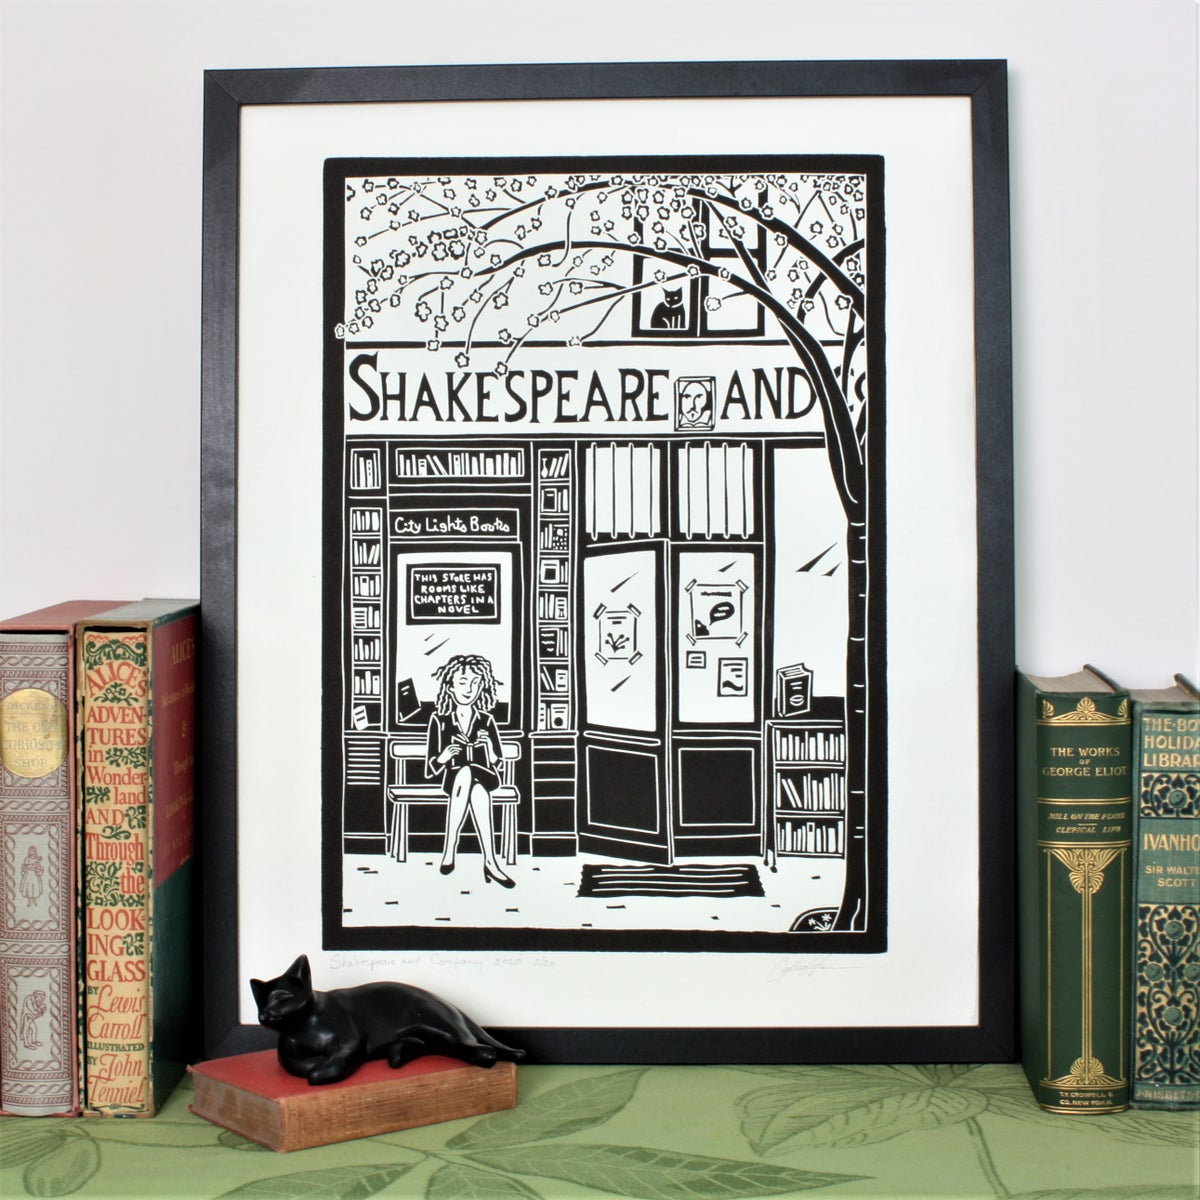 Image of Shakespeare and Company